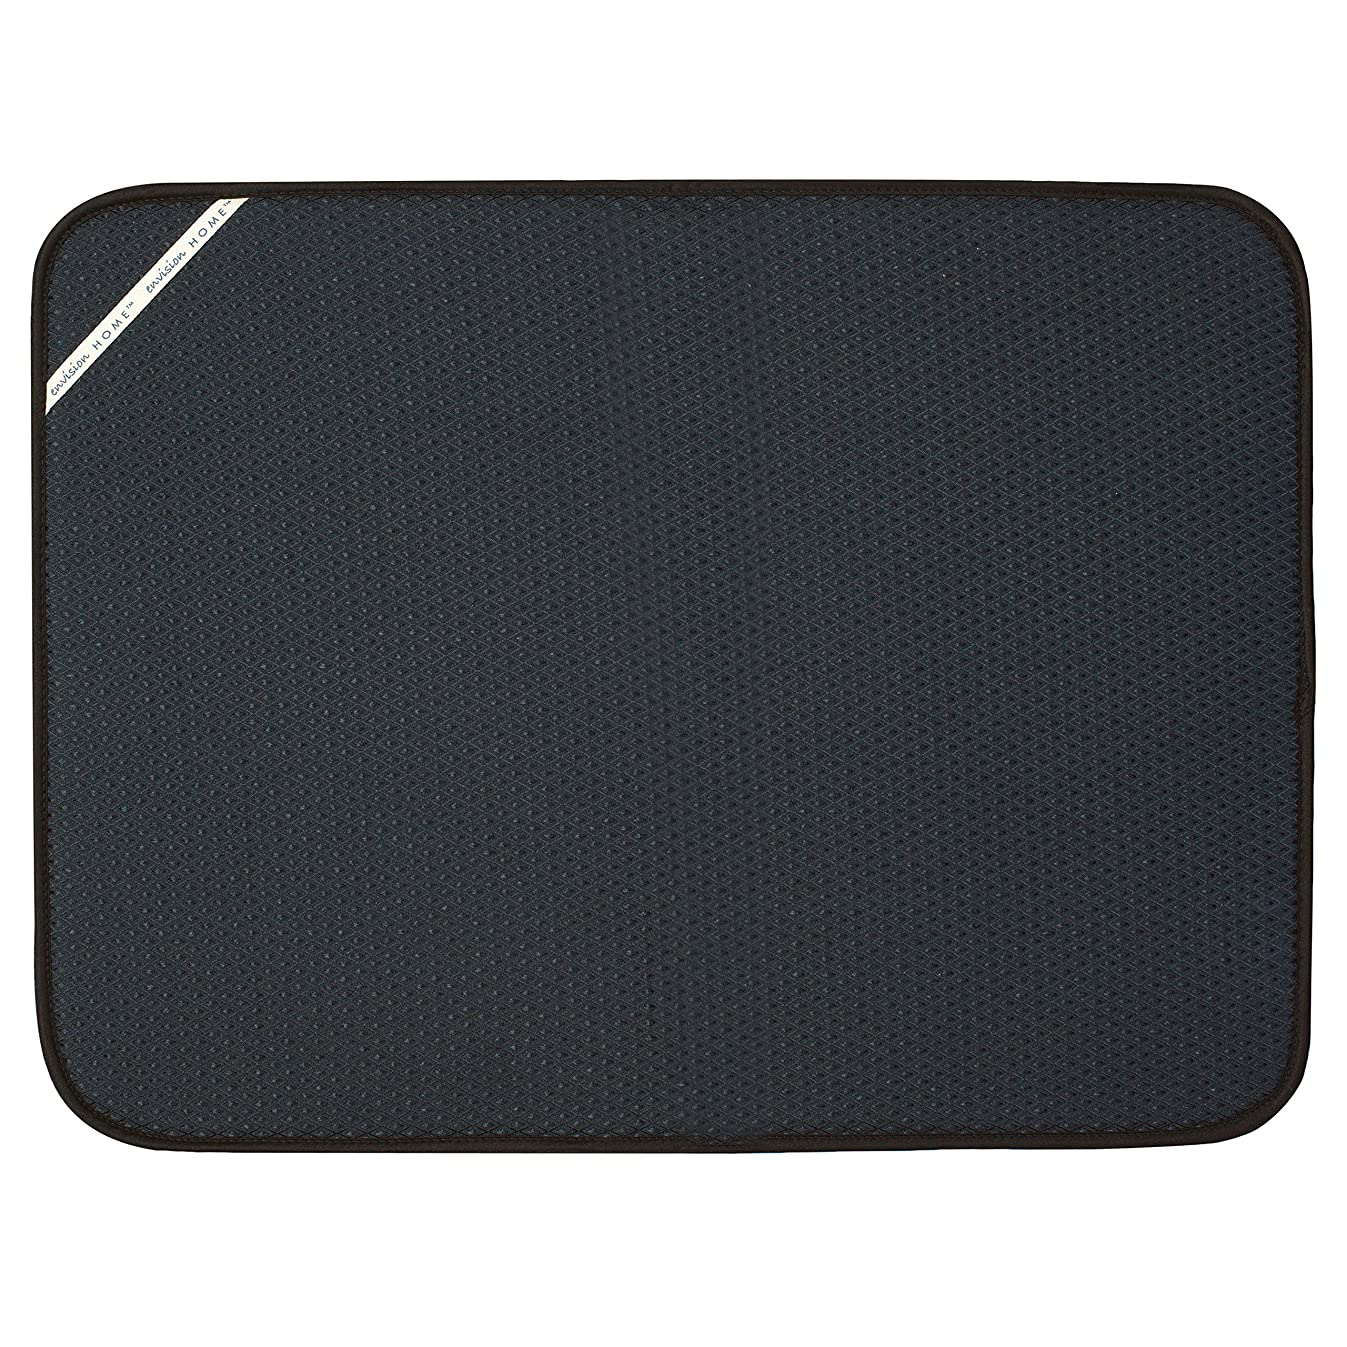 Envision Home 432801 18 24-Inch Microfiber Dish Drying Mat, X-Large, Black, XL,